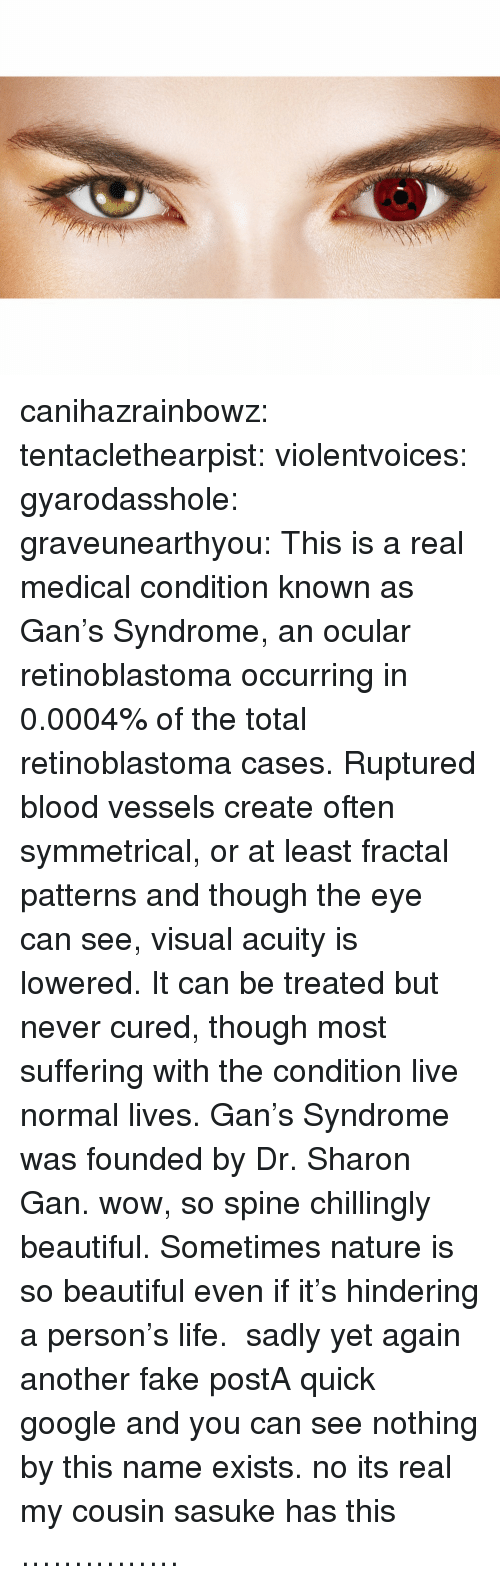 Beautiful, Fake, and Google: canihazrainbowz:  tentaclethearpist:  violentvoices:  gyarodasshole:  graveunearthyou:  This is a real medical condition known as Gan's Syndrome, an ocular retinoblastoma occurring in 0.0004% of the total retinoblastoma cases. Ruptured blood vessels create often symmetrical, or at least fractal patterns and though the eye can see, visual acuity is lowered. It can be treated but never cured, though most suffering with the condition live normal lives. Gan's Syndrome was founded by Dr. Sharon Gan.  wow, so spine chillingly beautiful. Sometimes nature is so beautiful even if it's hindering a person's life.  sadly yet again another fake postA quick google and you can see nothing by this name exists.  no its real my cousin sasuke has this  ……………